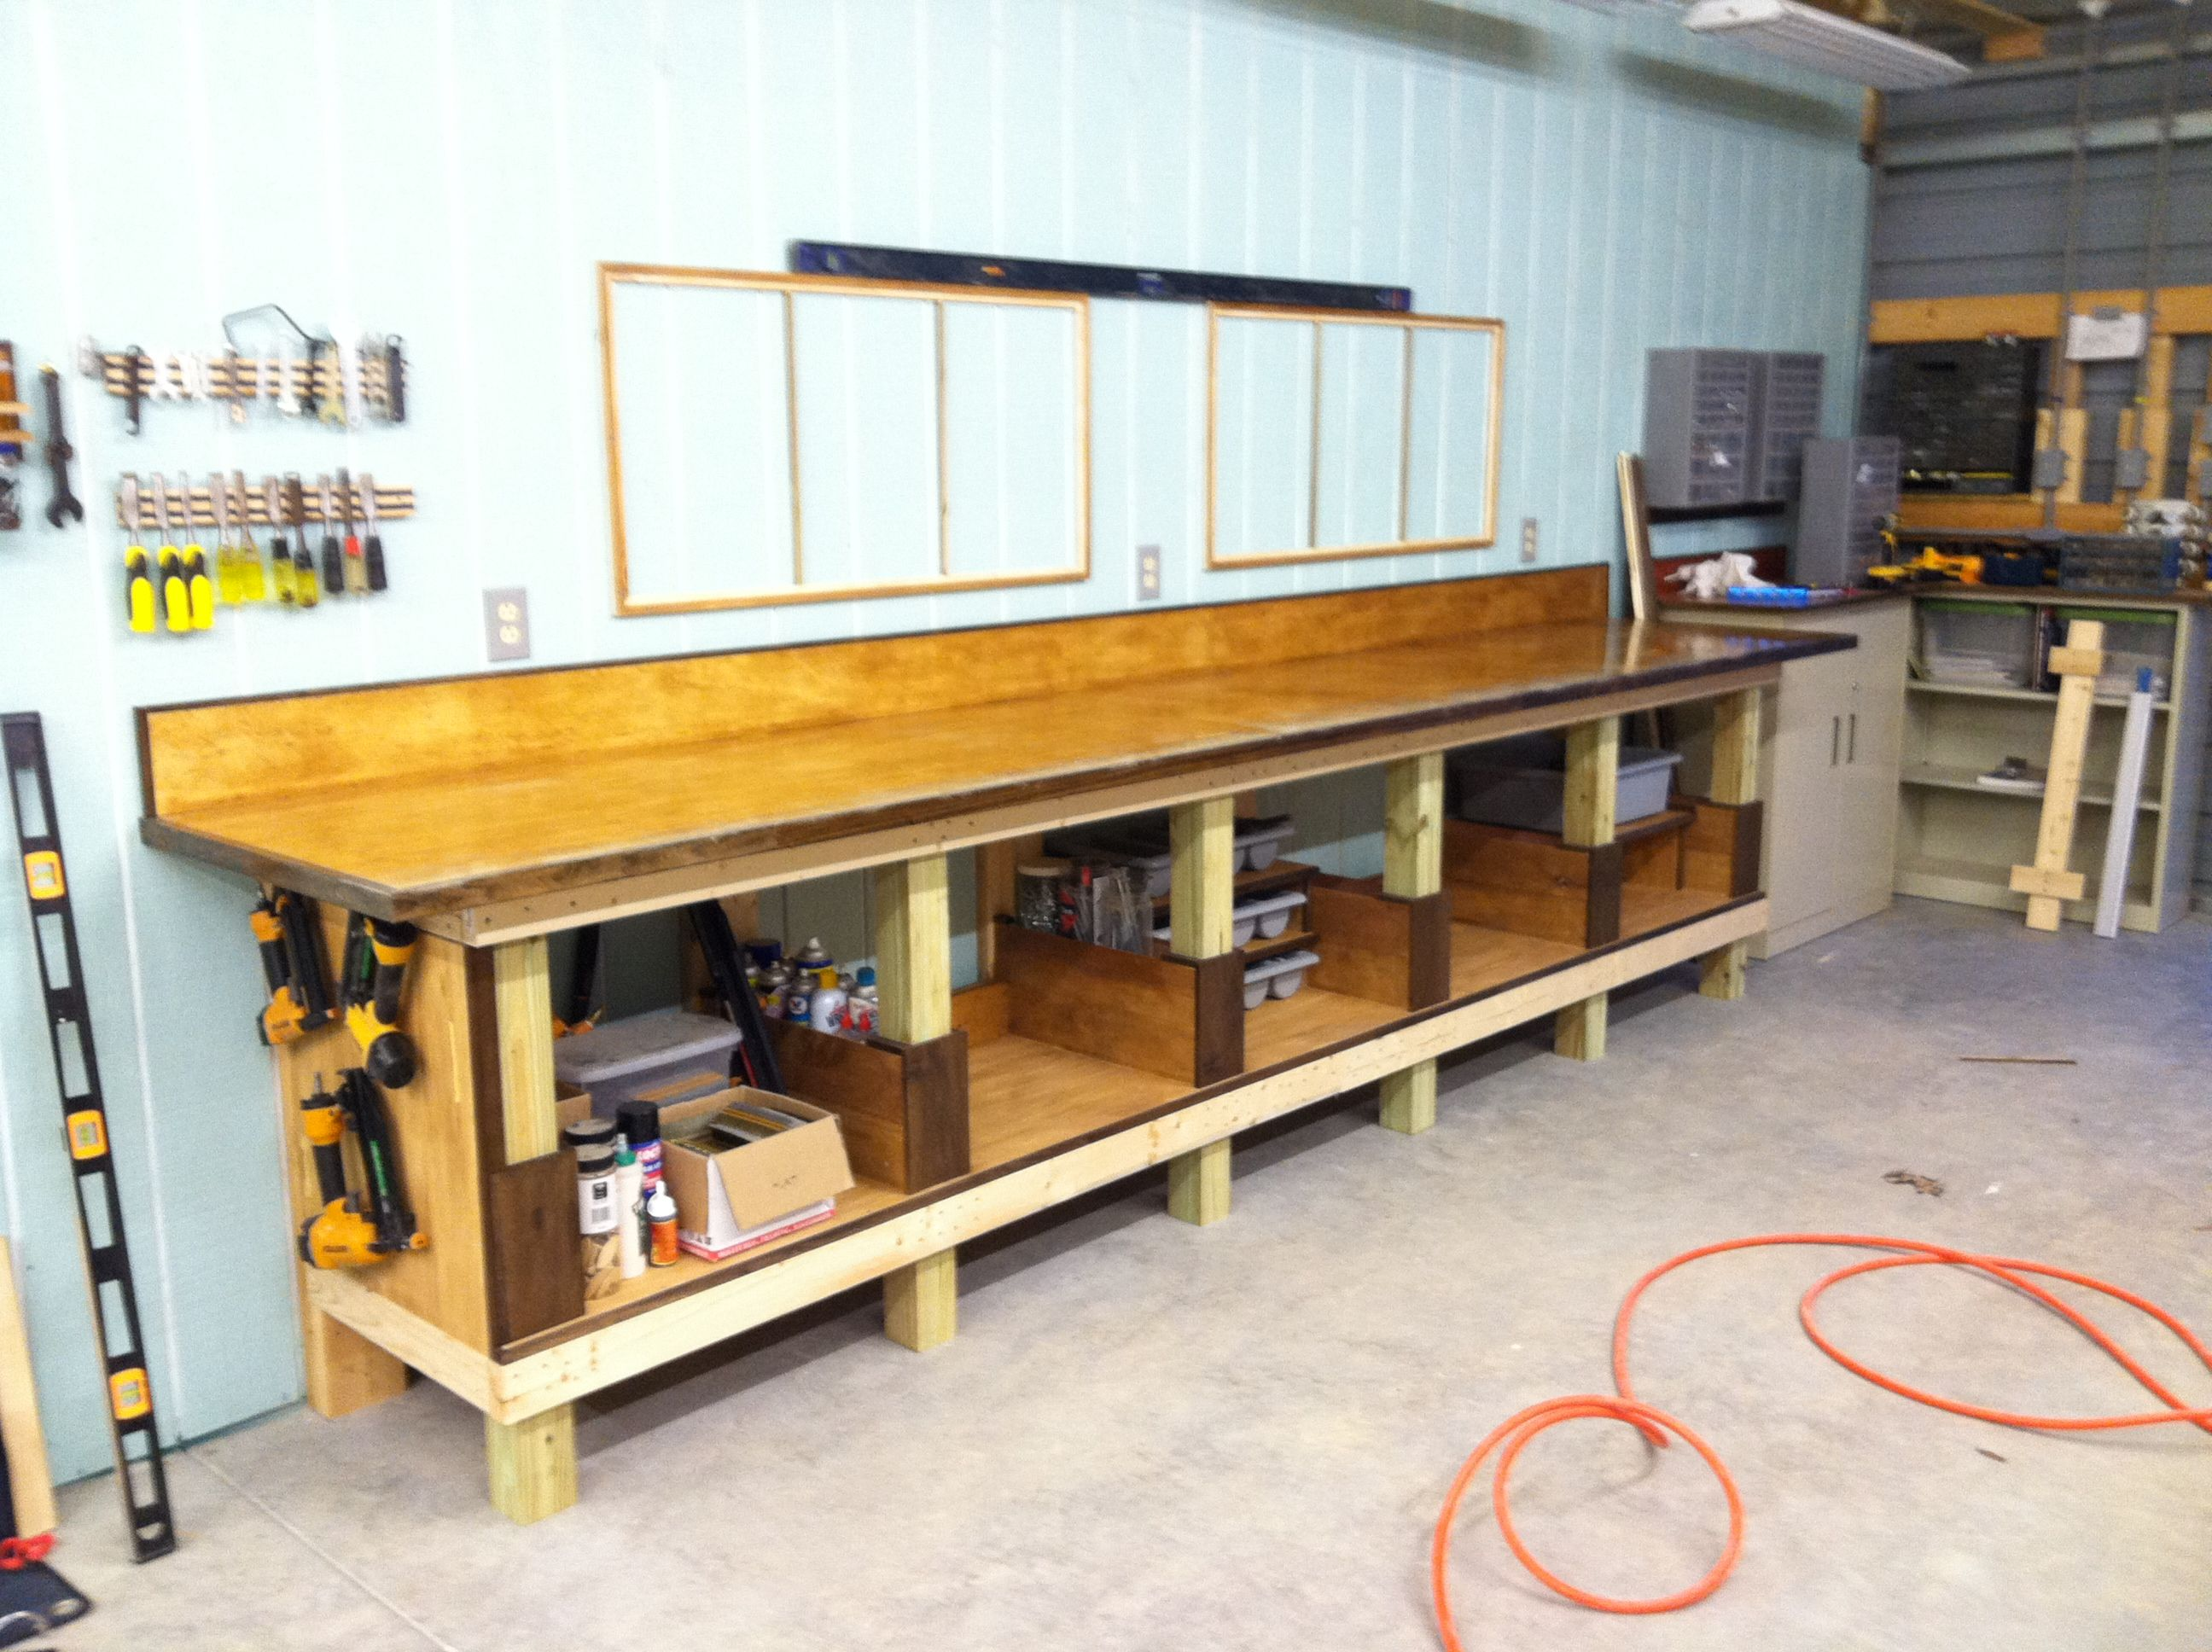 Finished Shop Work Bench With Shelving Storage Insets Bench Top Finish Is Minwax Golden Oak